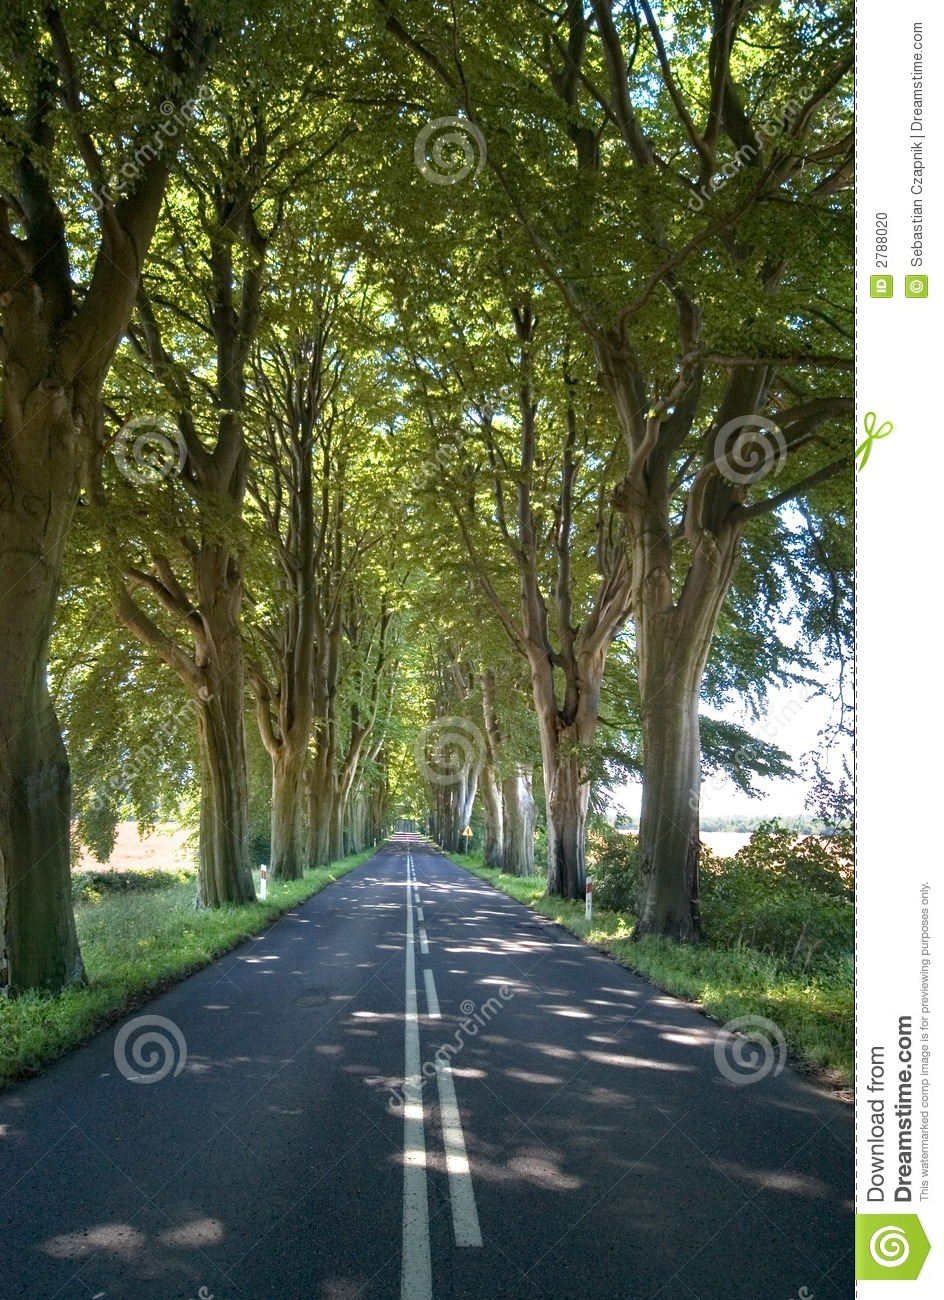 Trees lining straight road stock photo. Image of summer - 2788020 for Straight Road With Trees  49jwn